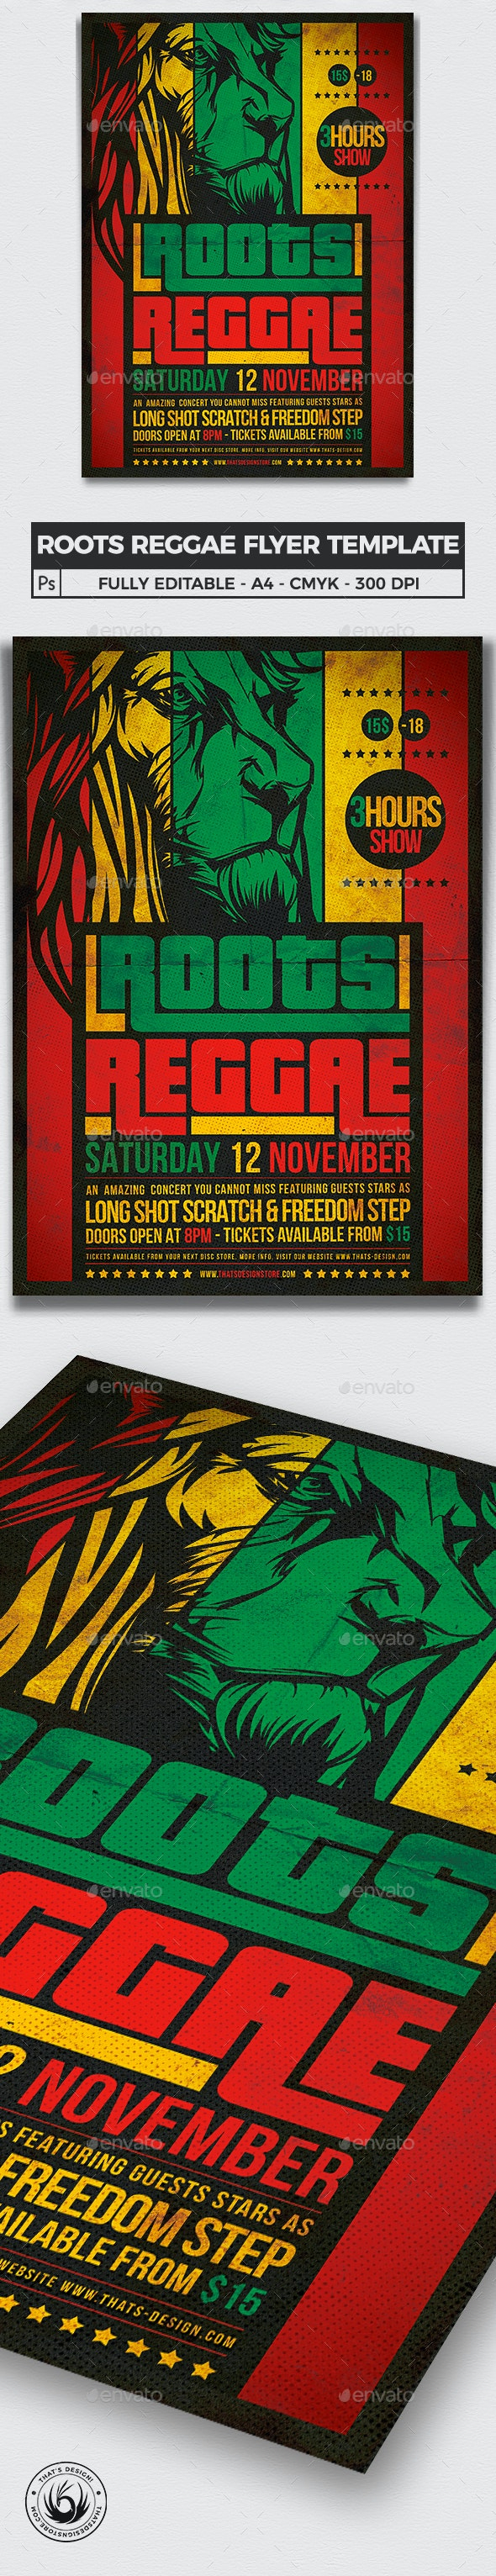 Roots Reggae Flyer Template - Concerts Events